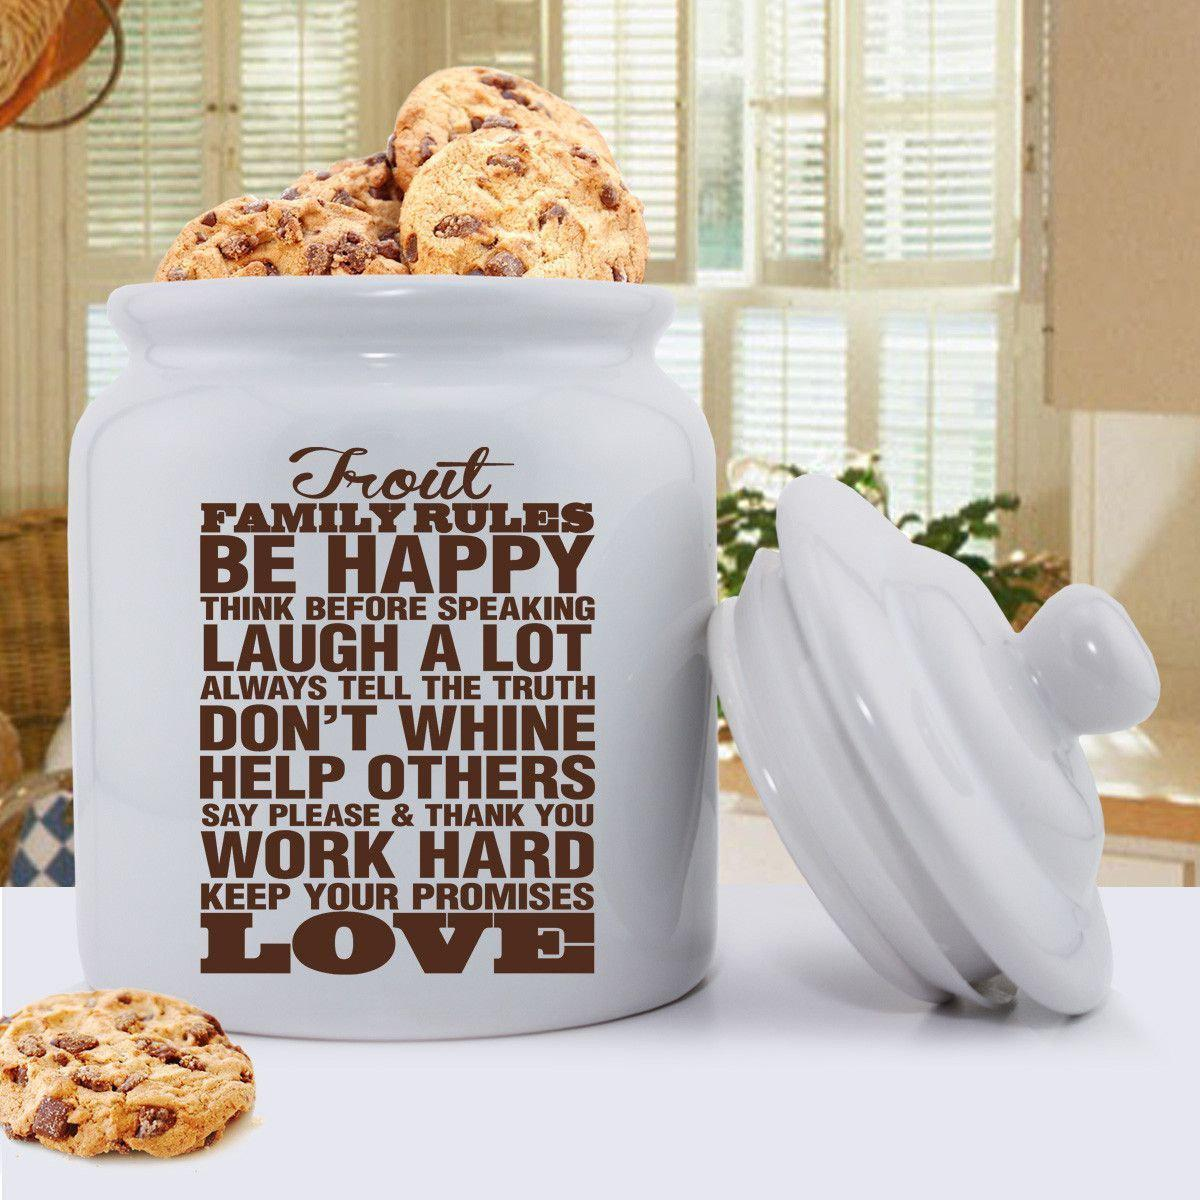 Personalized-Antique-Style-Family-Rules-Cookie-Jar